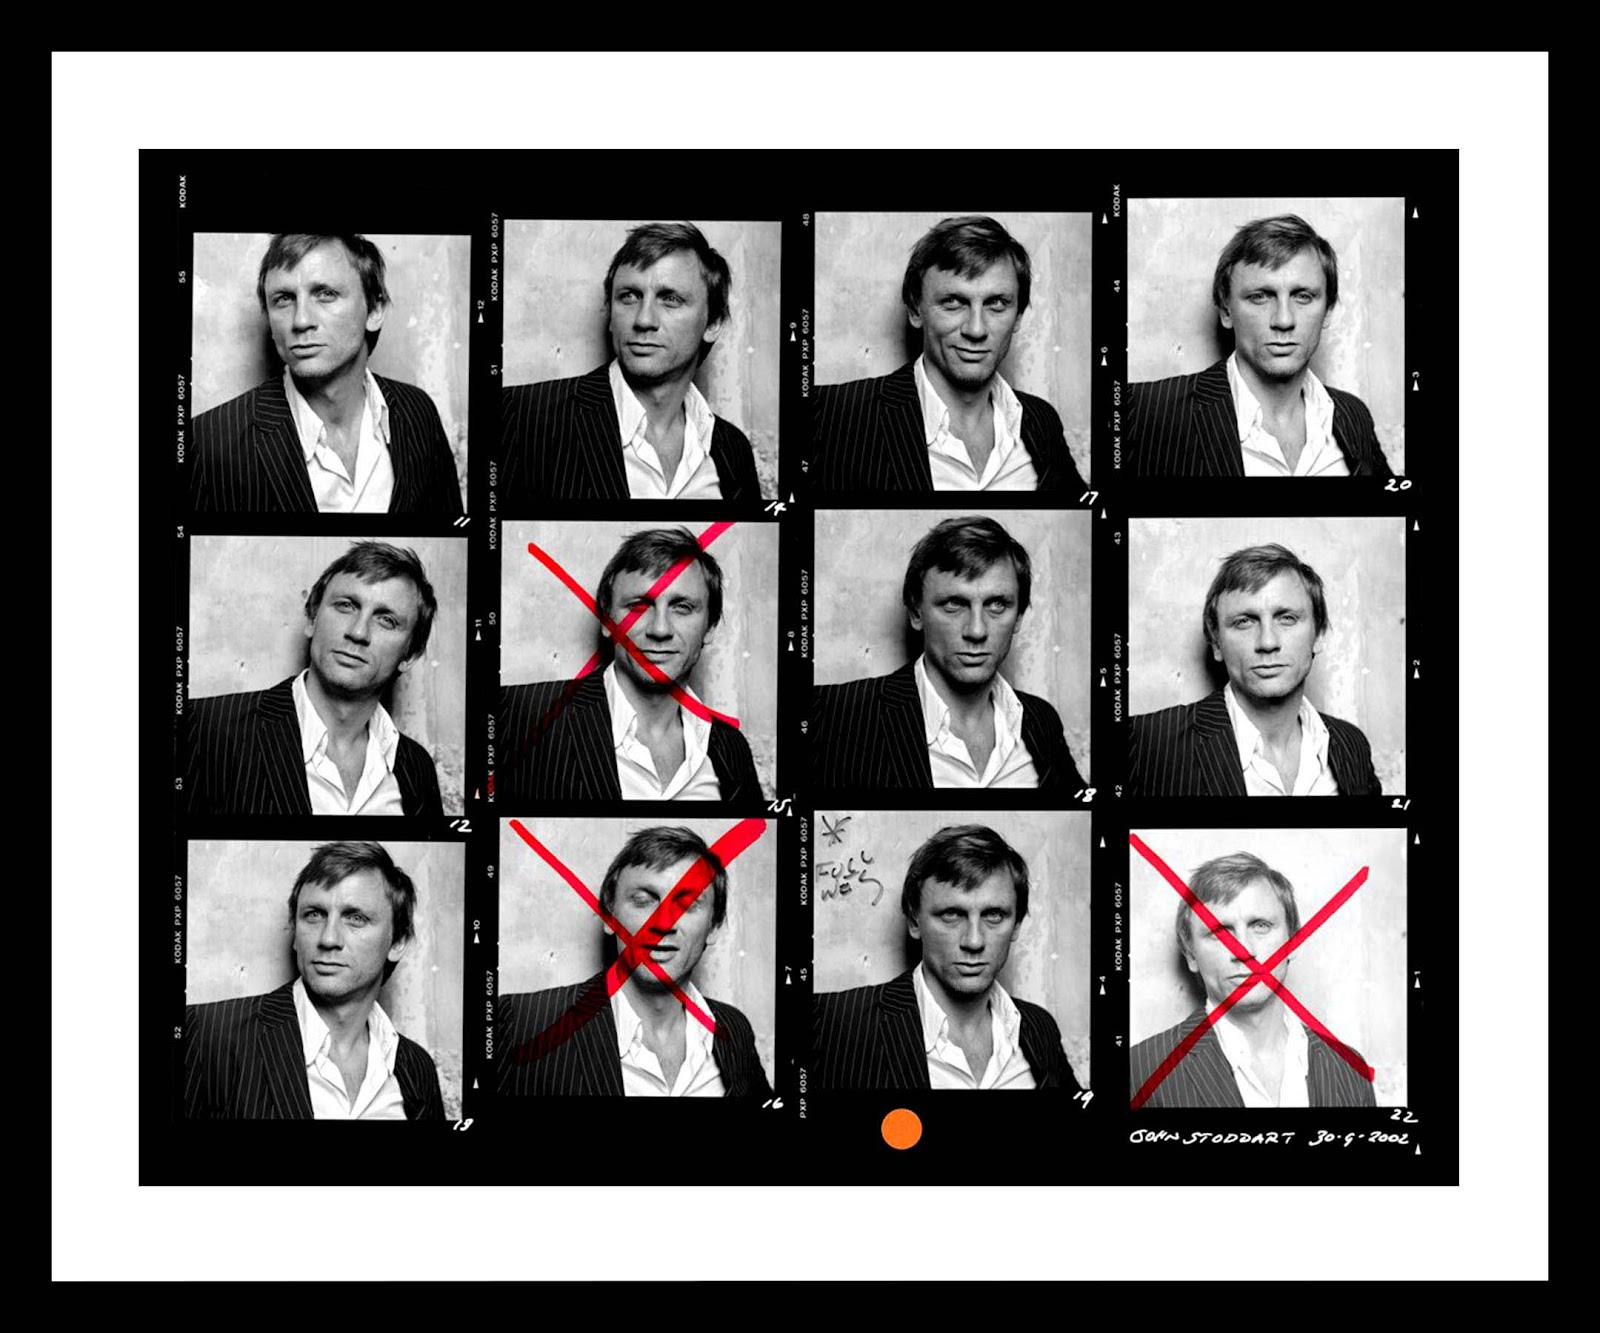 js0029_-_daniel_craig_contact_sheet.jpeg